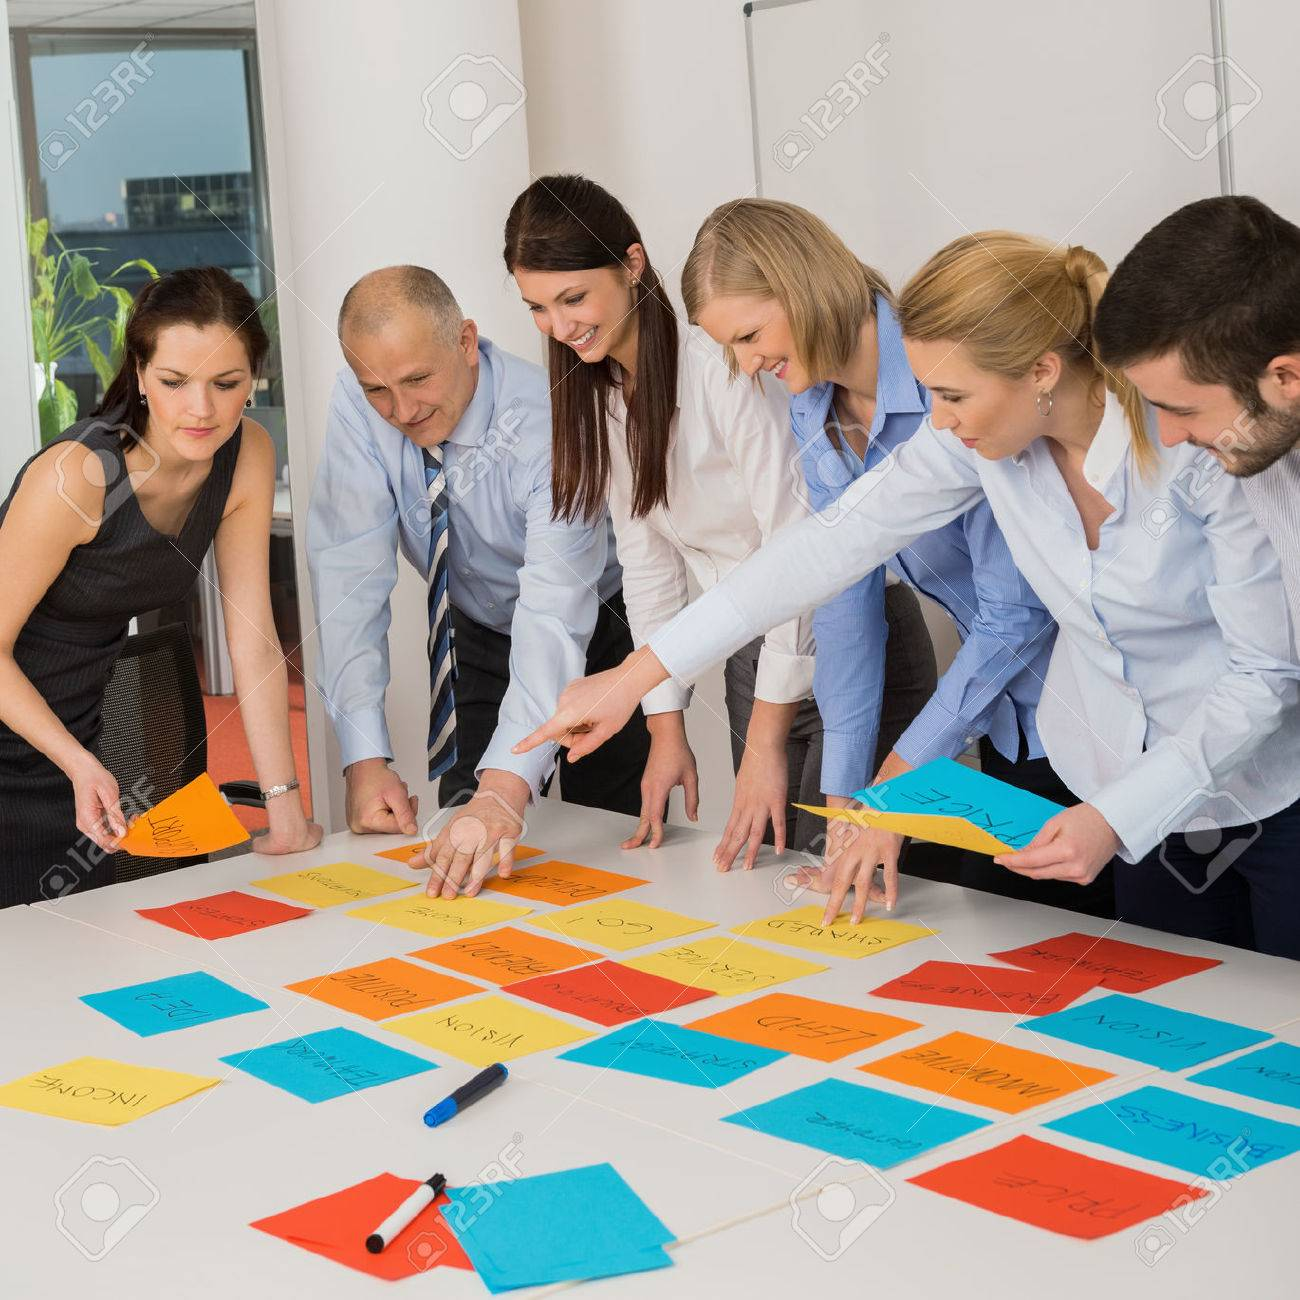 Business team brainstorming using color labels on table in office Stock Photo - 27281137